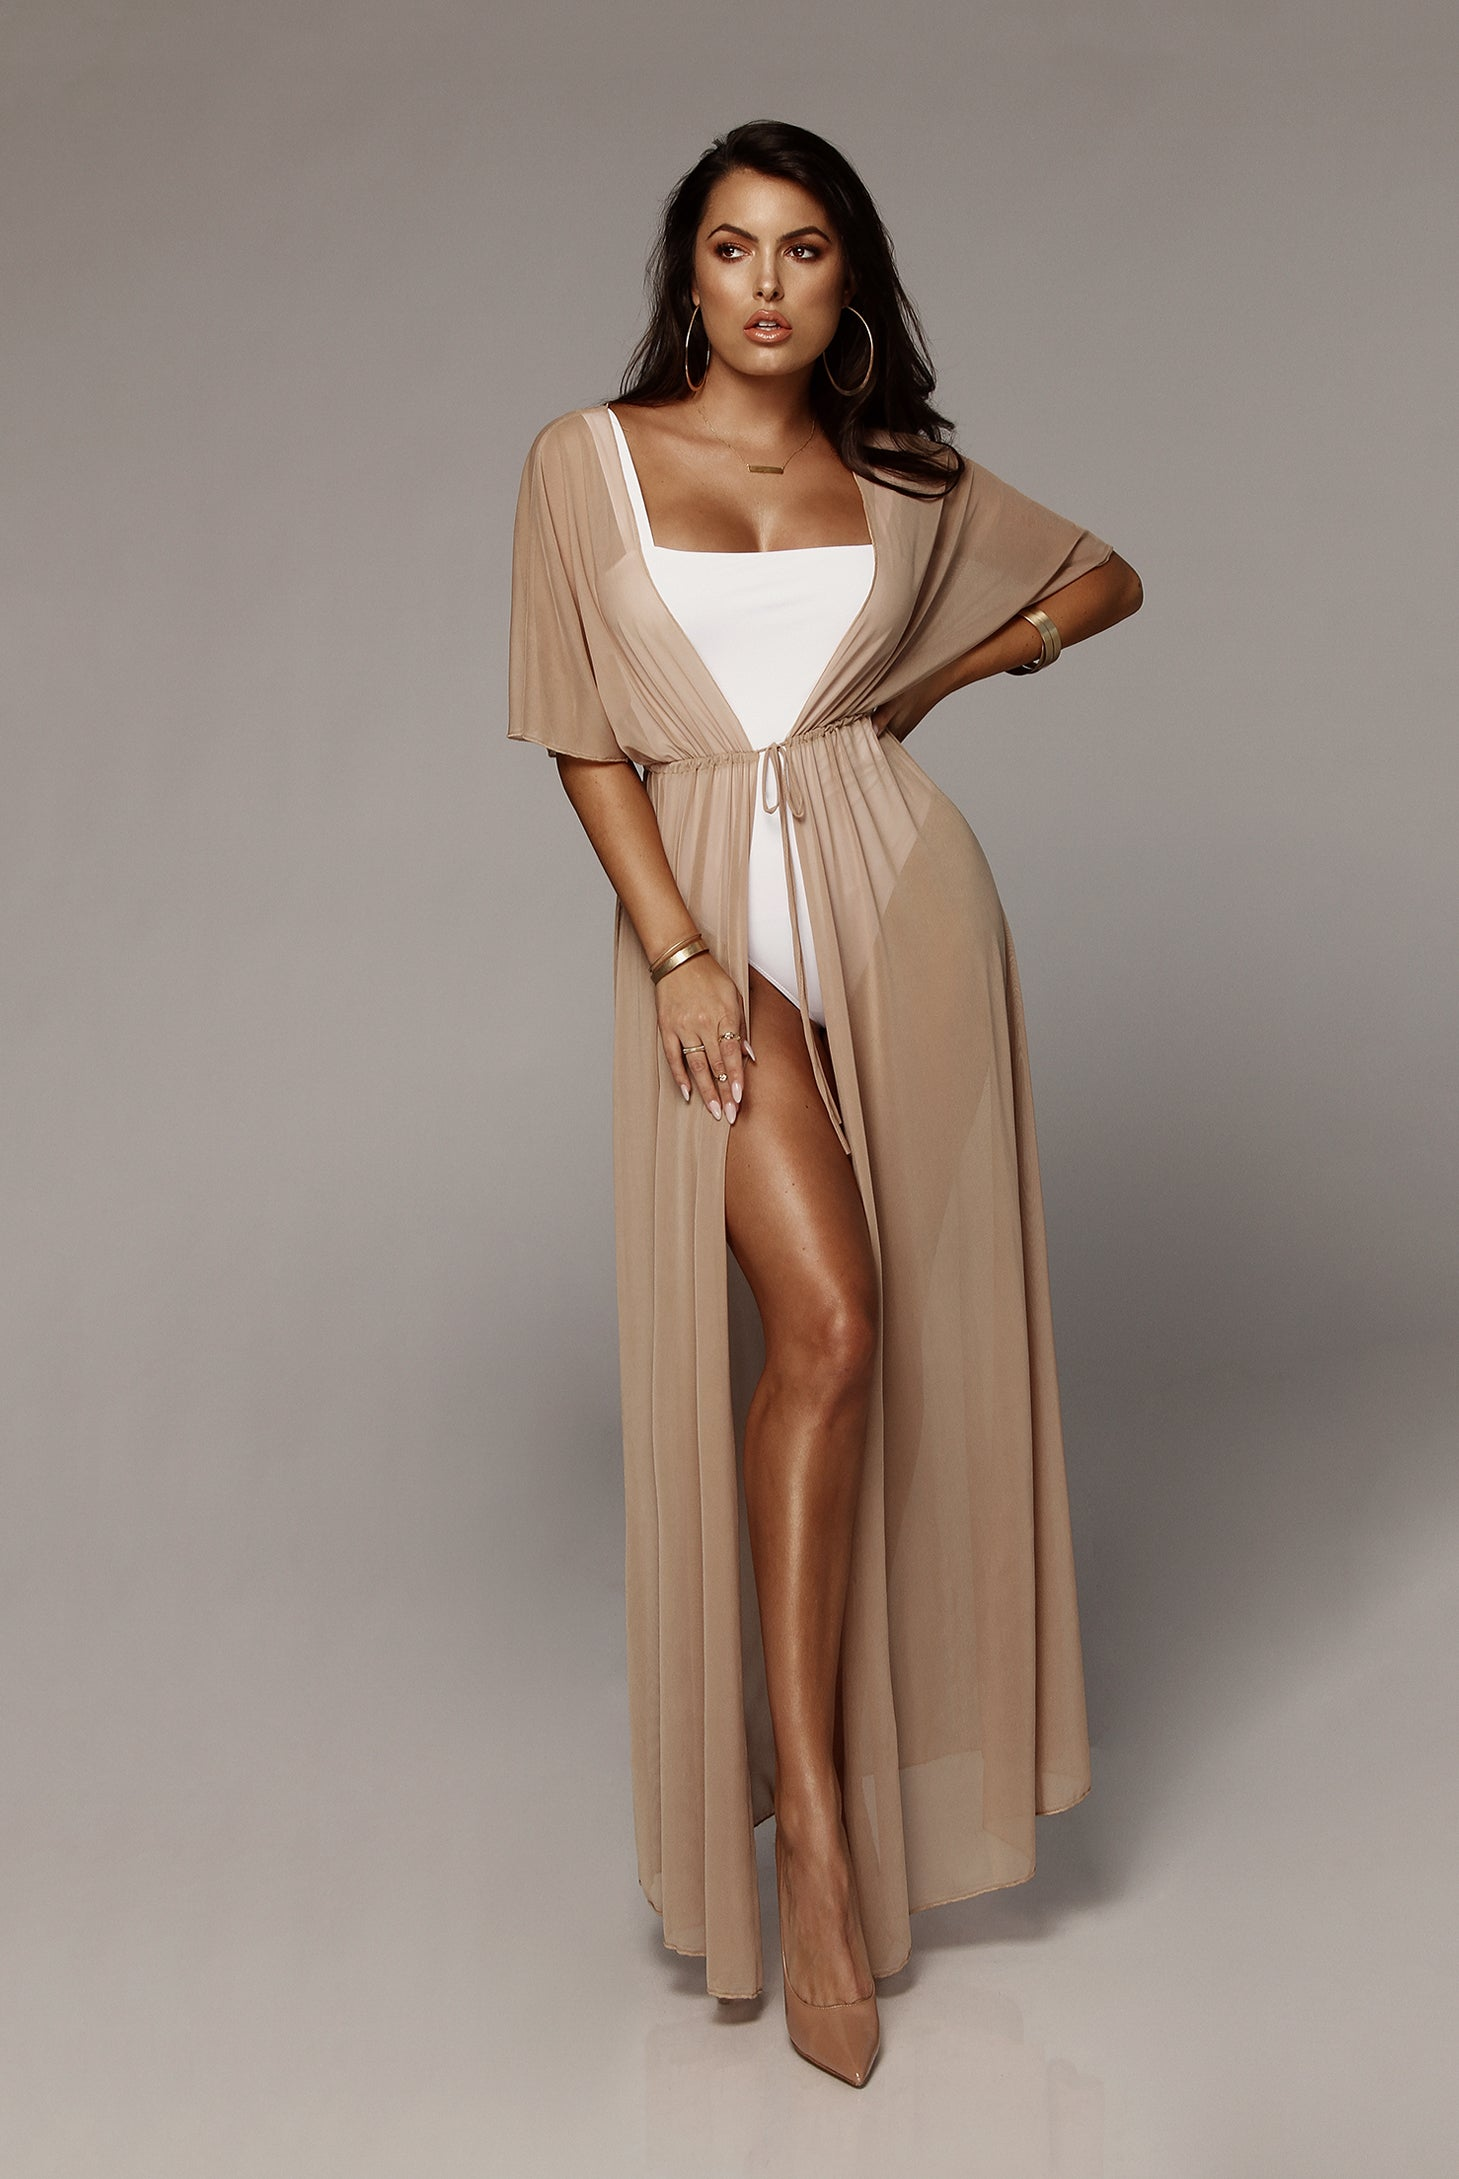 Mesh Maeve Duster Cover Up